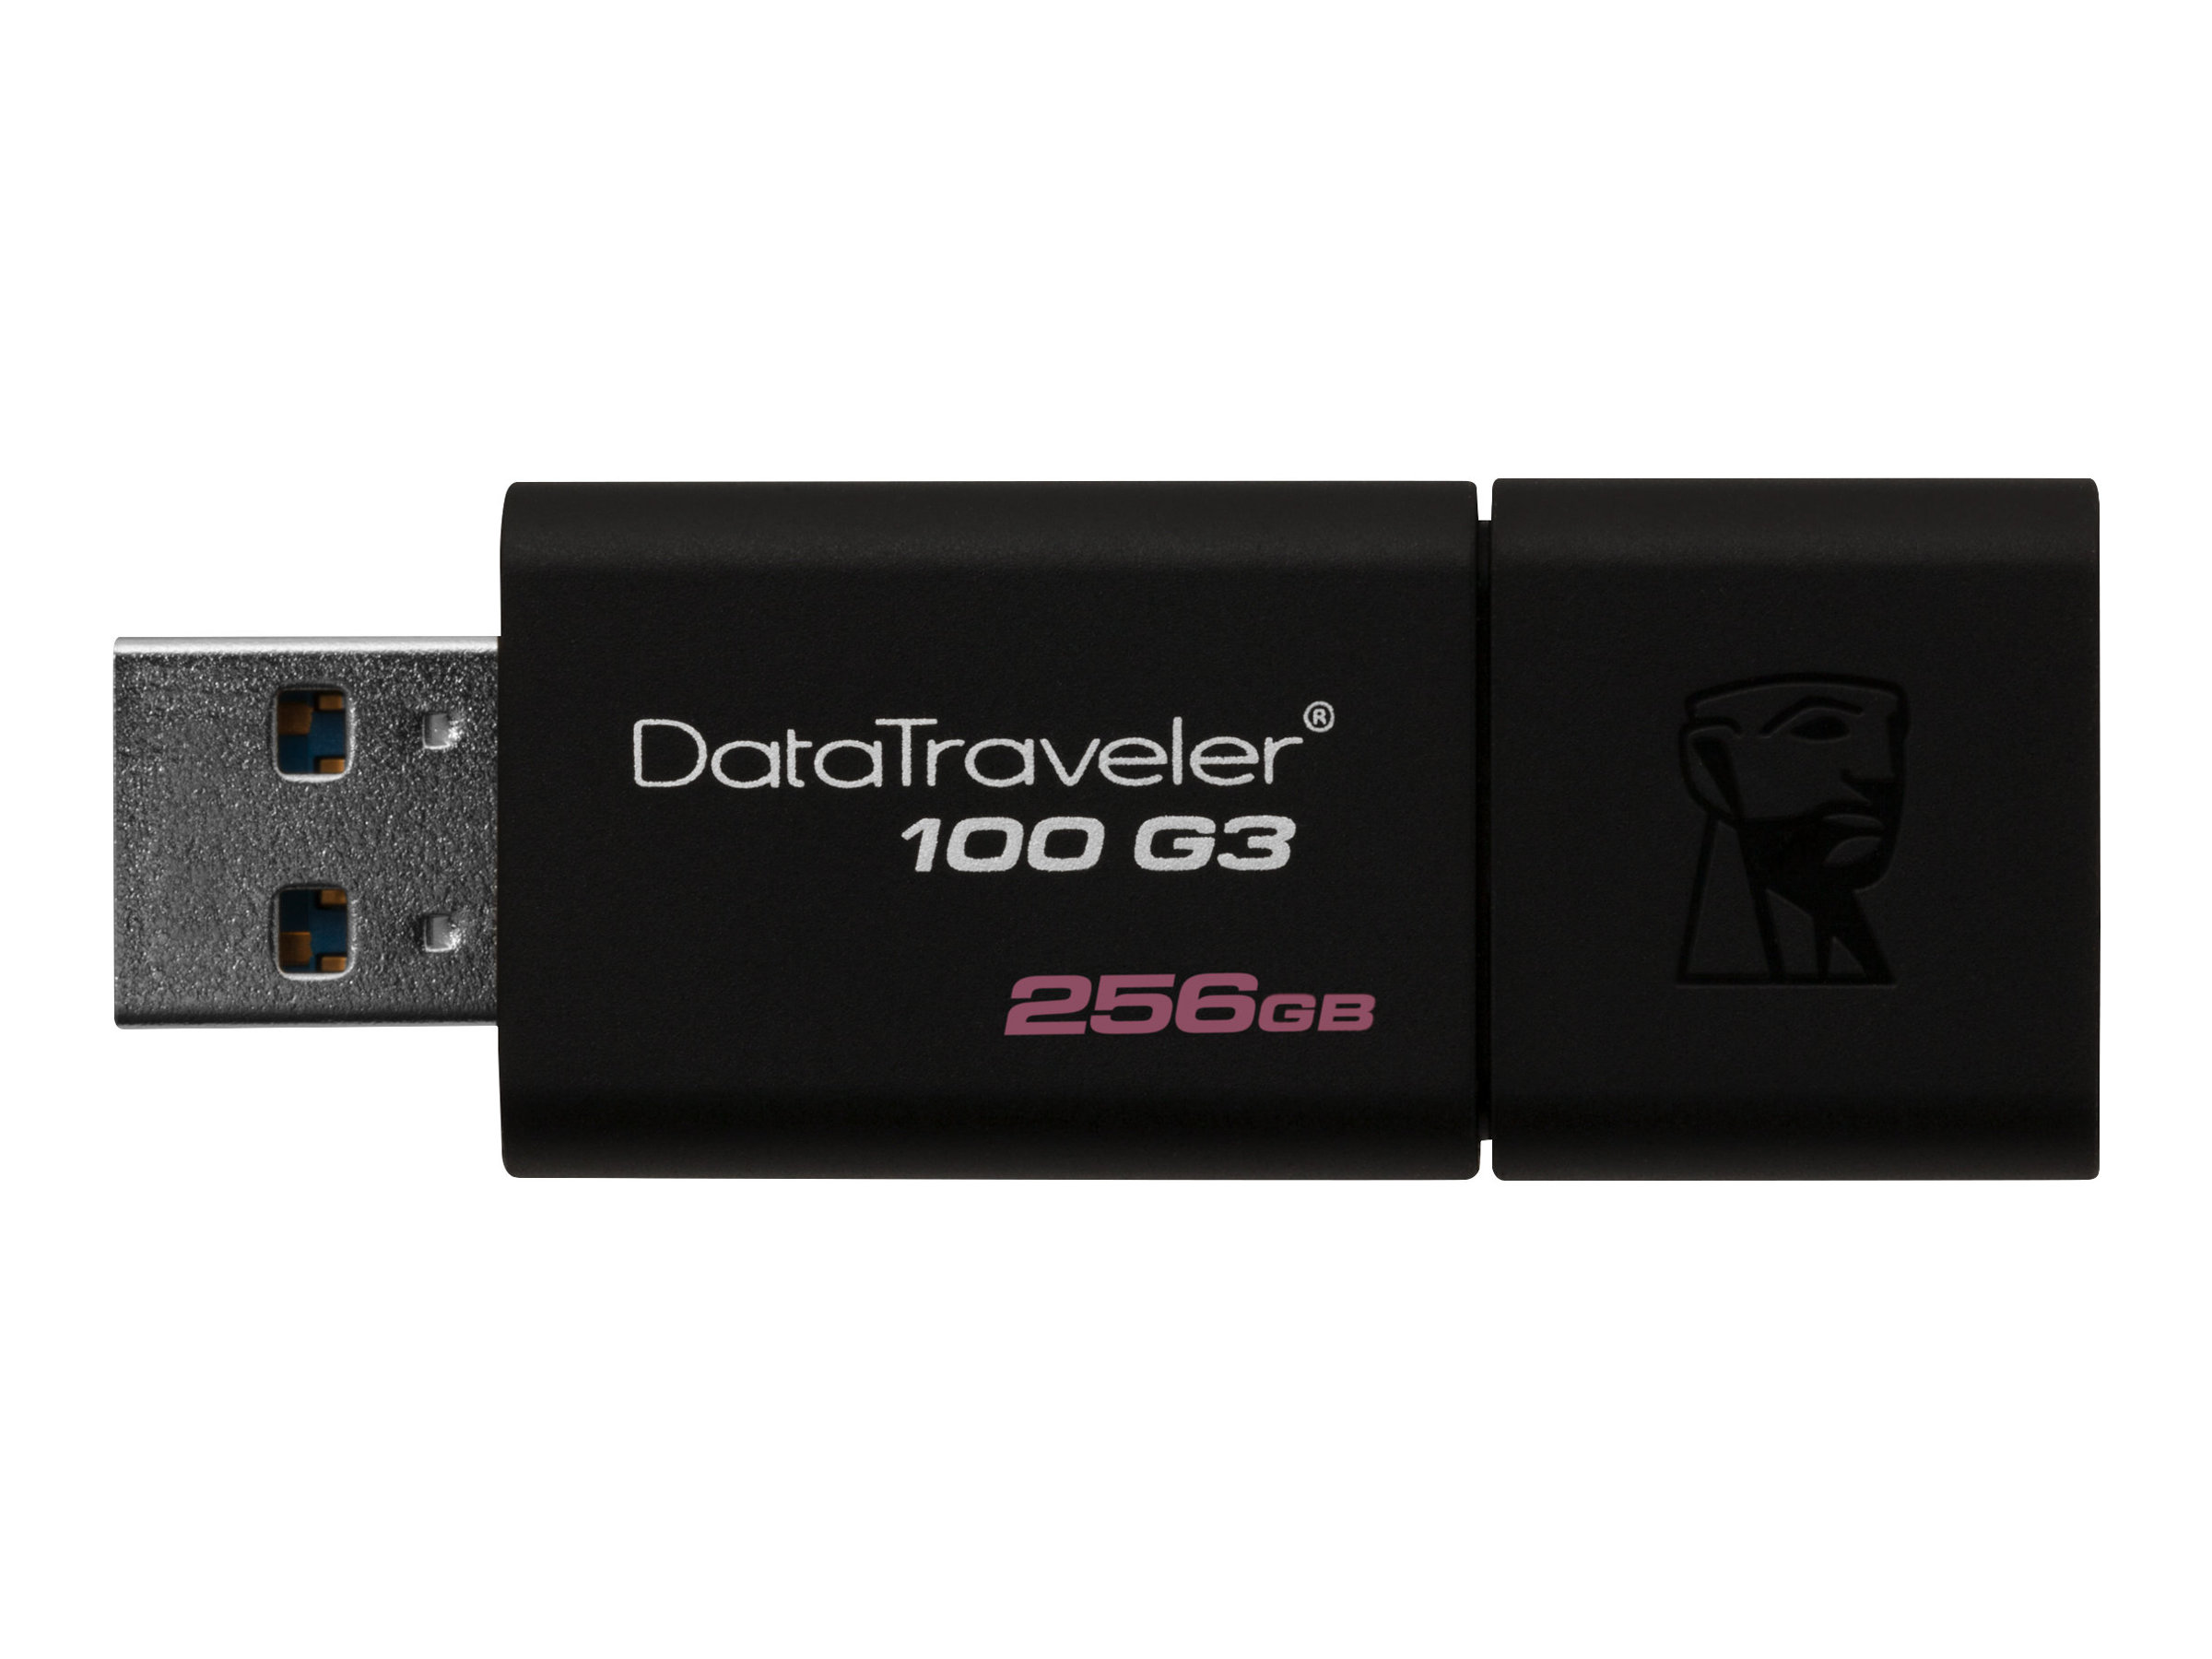 Kingston DataTraveler 100 G3 - USB-Flash-Laufwerk - 256 GB - USB 3.0 - Schwarz